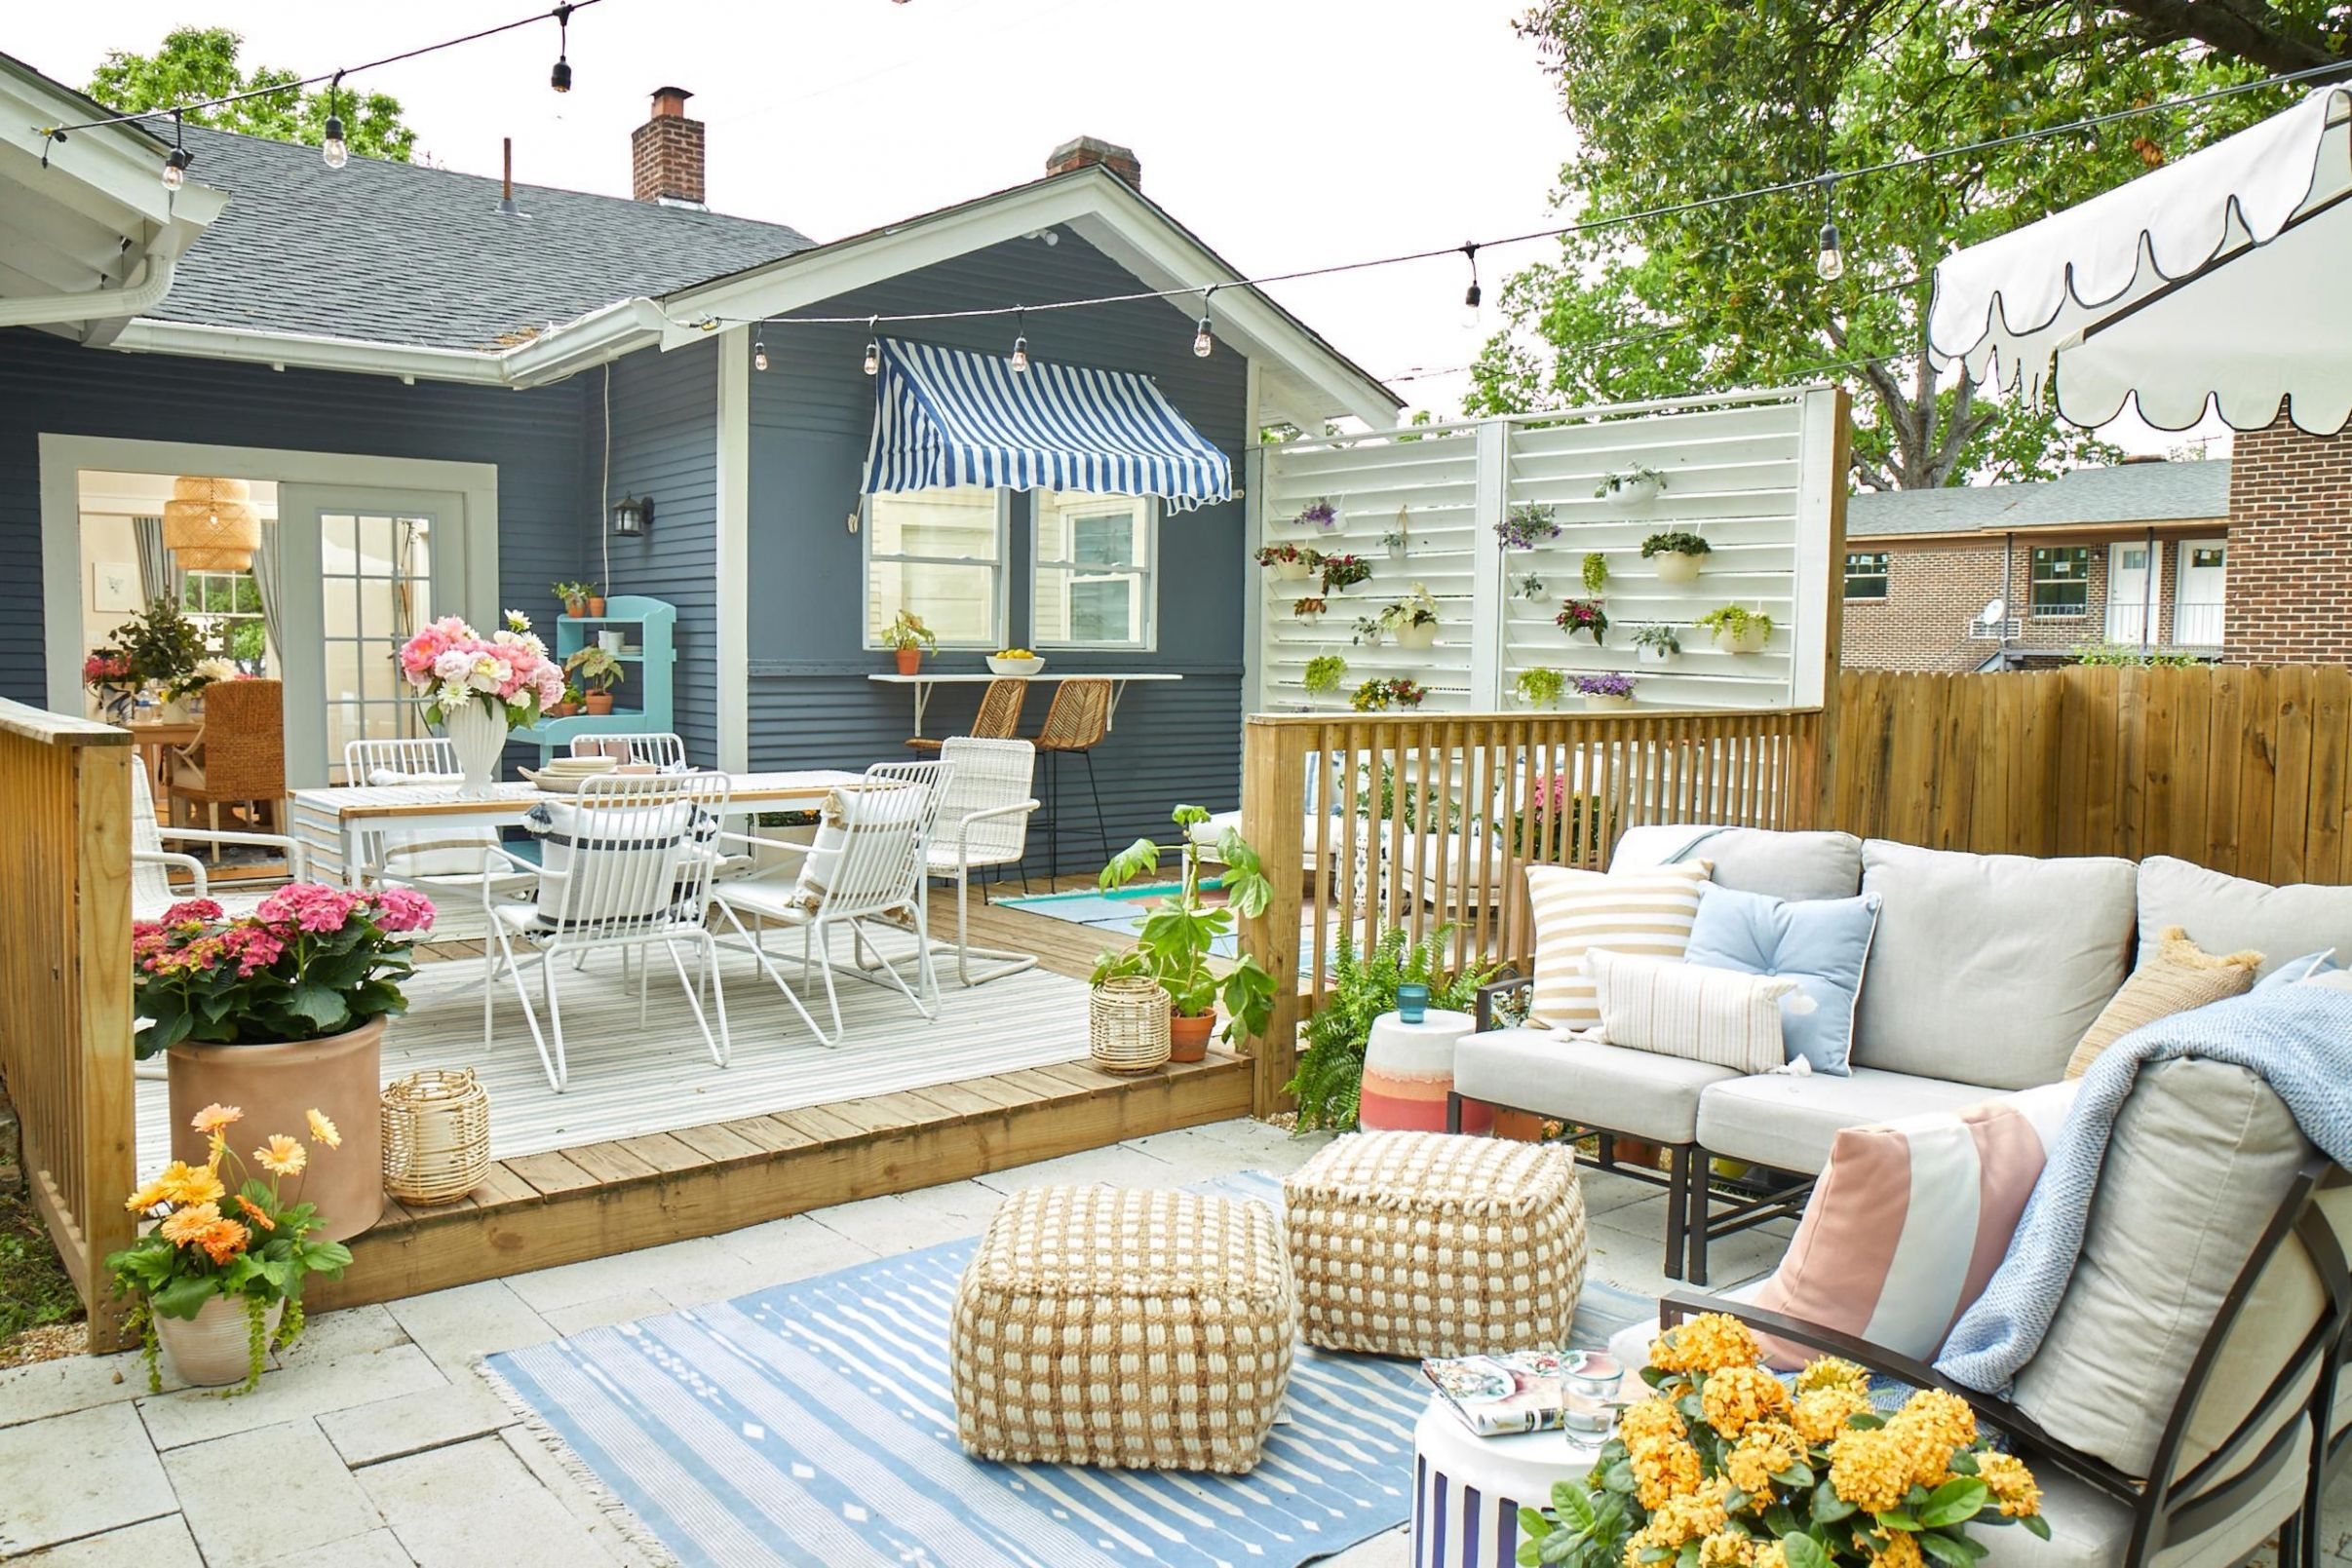 11 Best Patio and Porch Design Ideas - Decorating Your Outdoor Space - backyard wall decor ideas